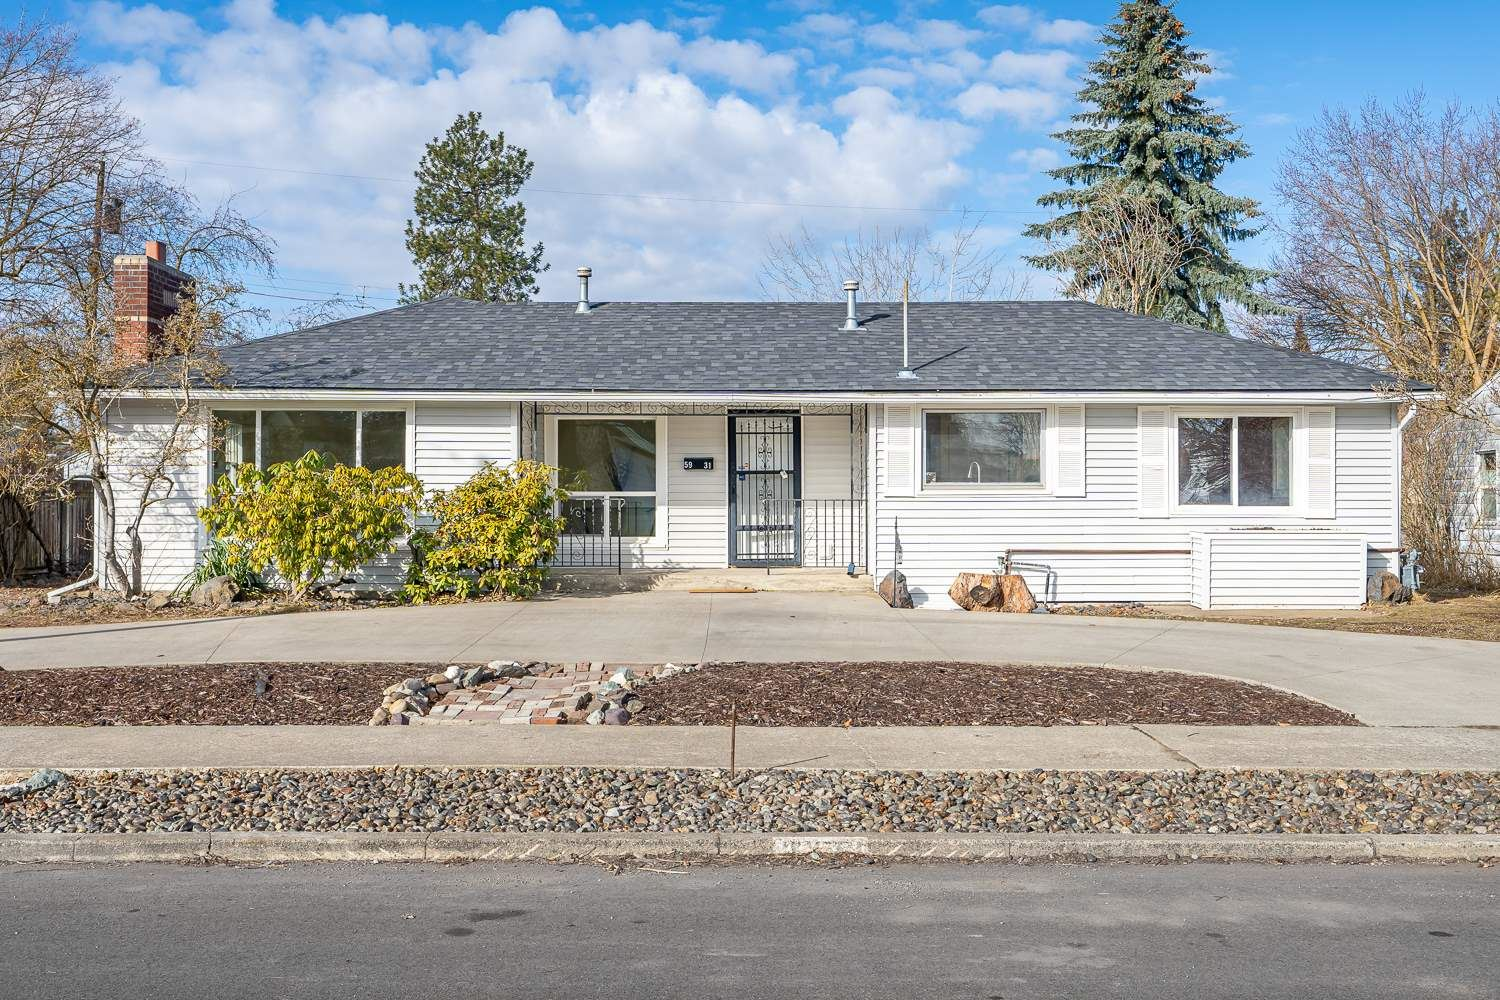 5931 N LINCOLN St, Spokane, WA 99205 - #: 202112383